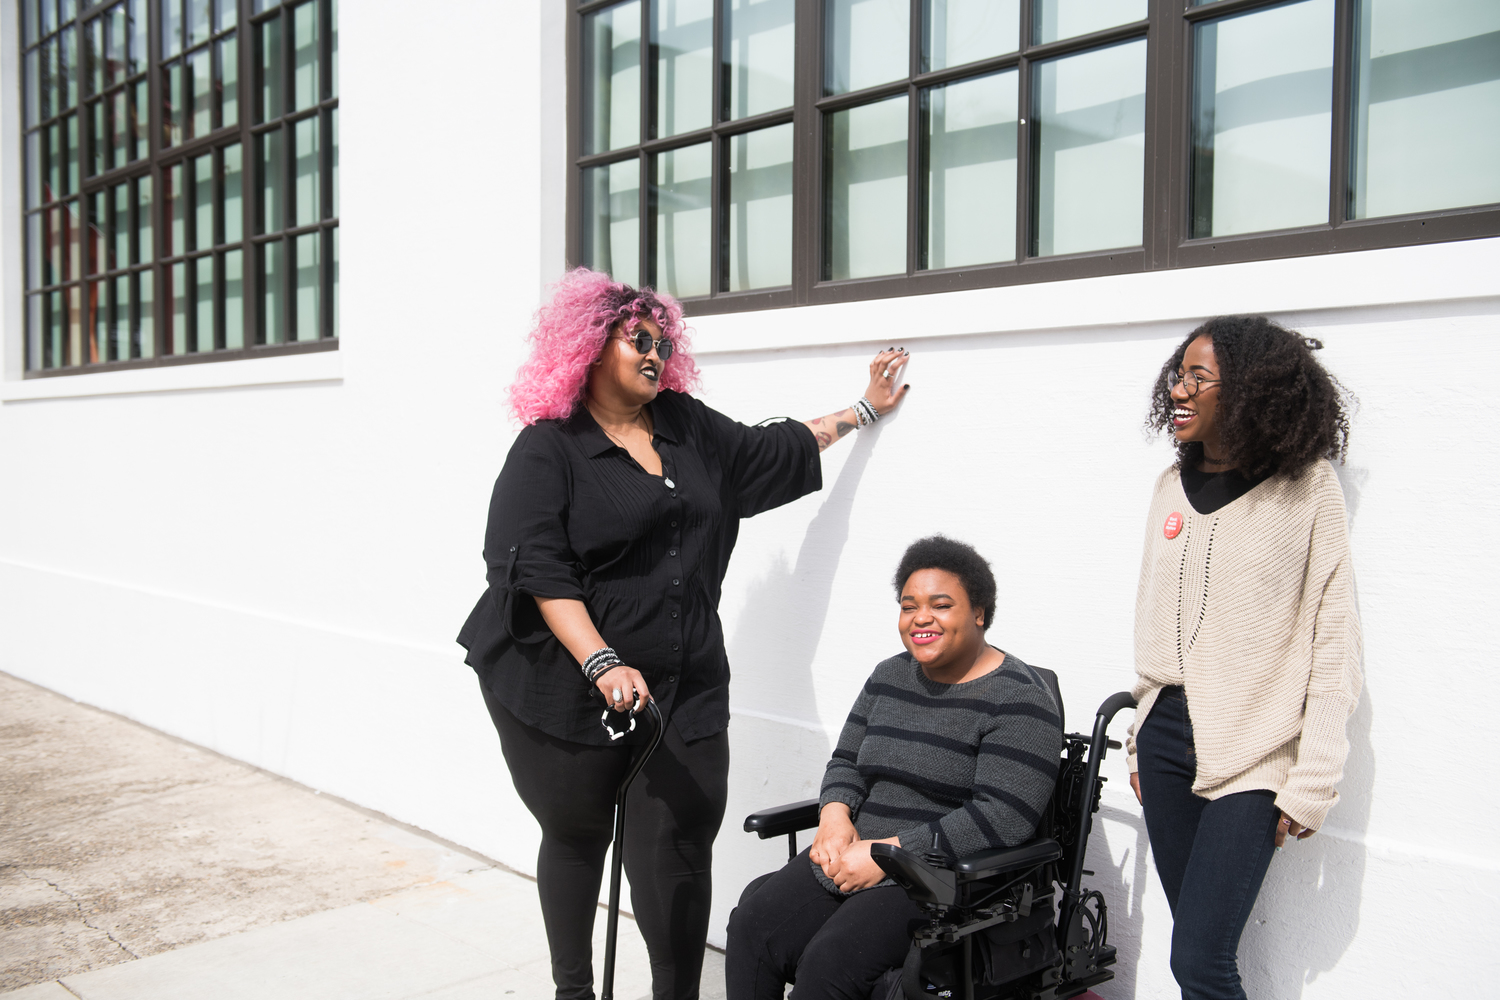 3 black disabled folx gather to chat and laugh